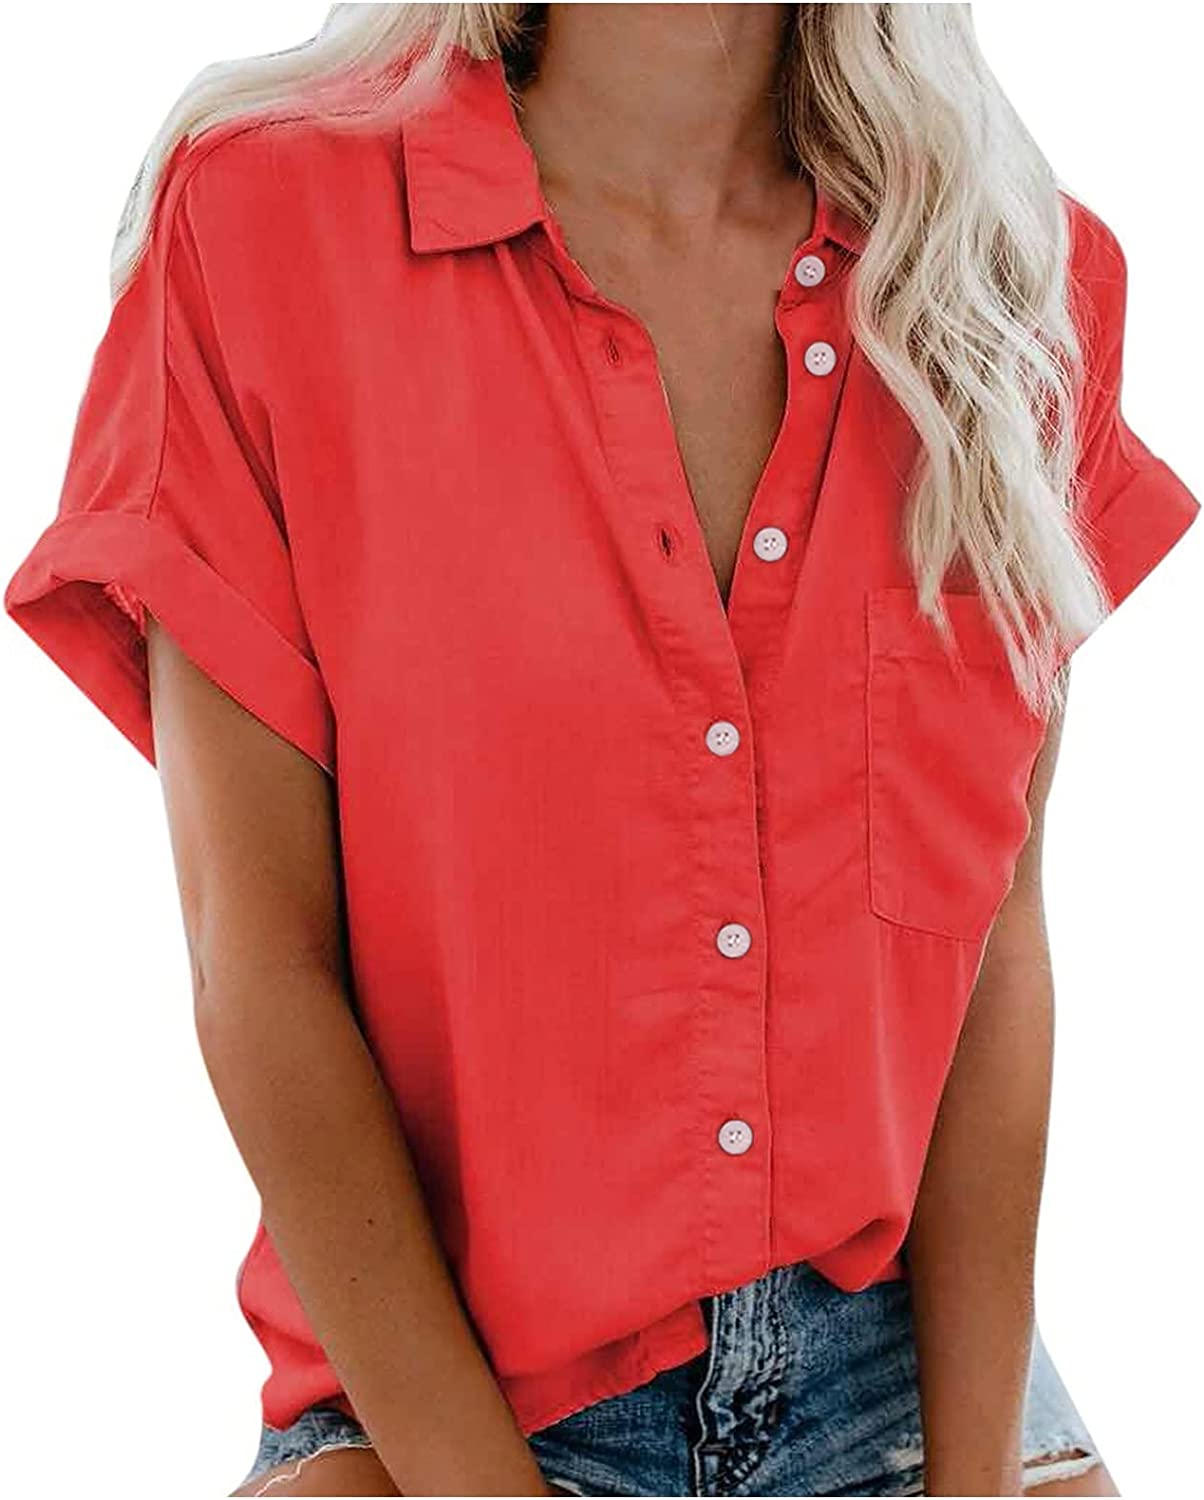 Short Sleeve Blouses for Women Casual Summer Super Special New mail order SALE held Up Neck So V Button